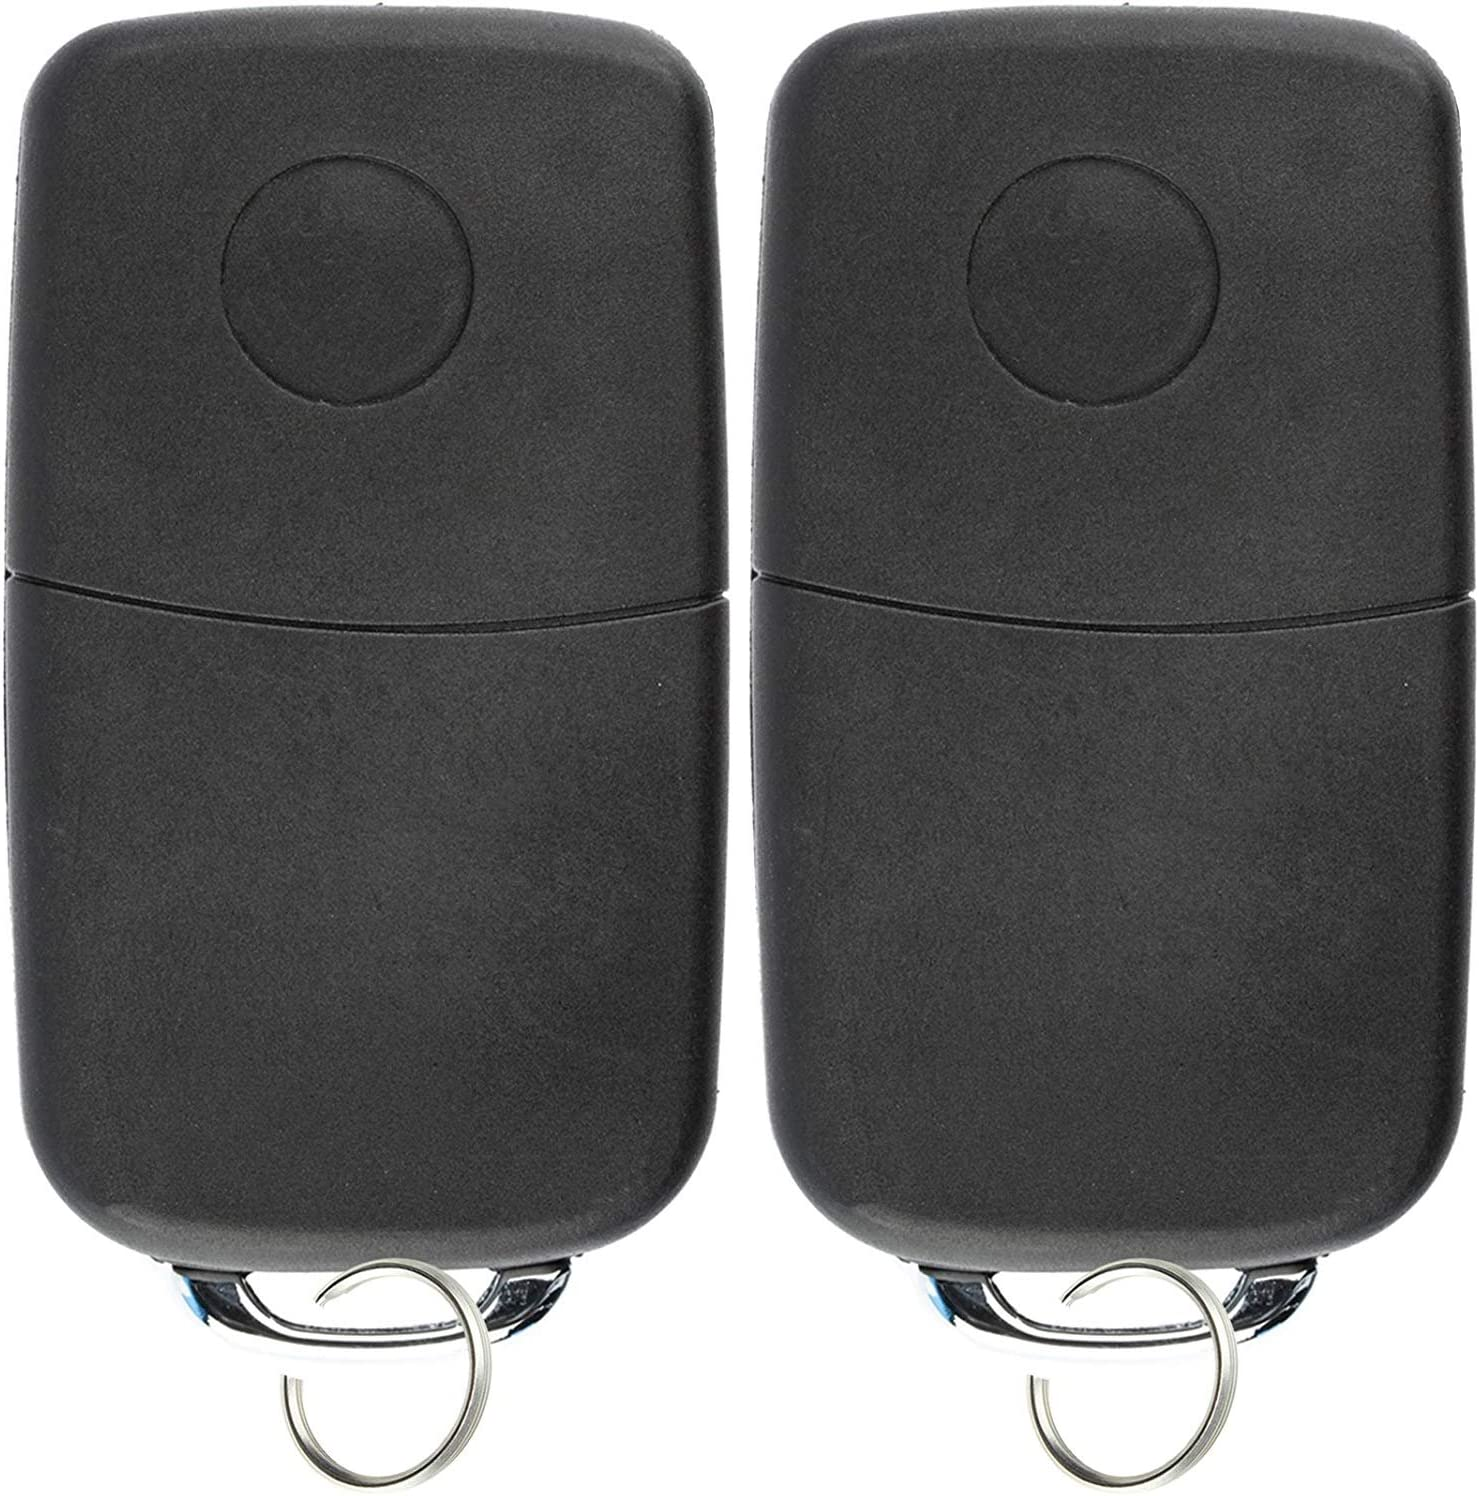 Rendezvous Aztek KeylessOption Keyless Entry Remote Fob Car Ignition Key For L2C0007T Grand Prix Pack of 2 Regal